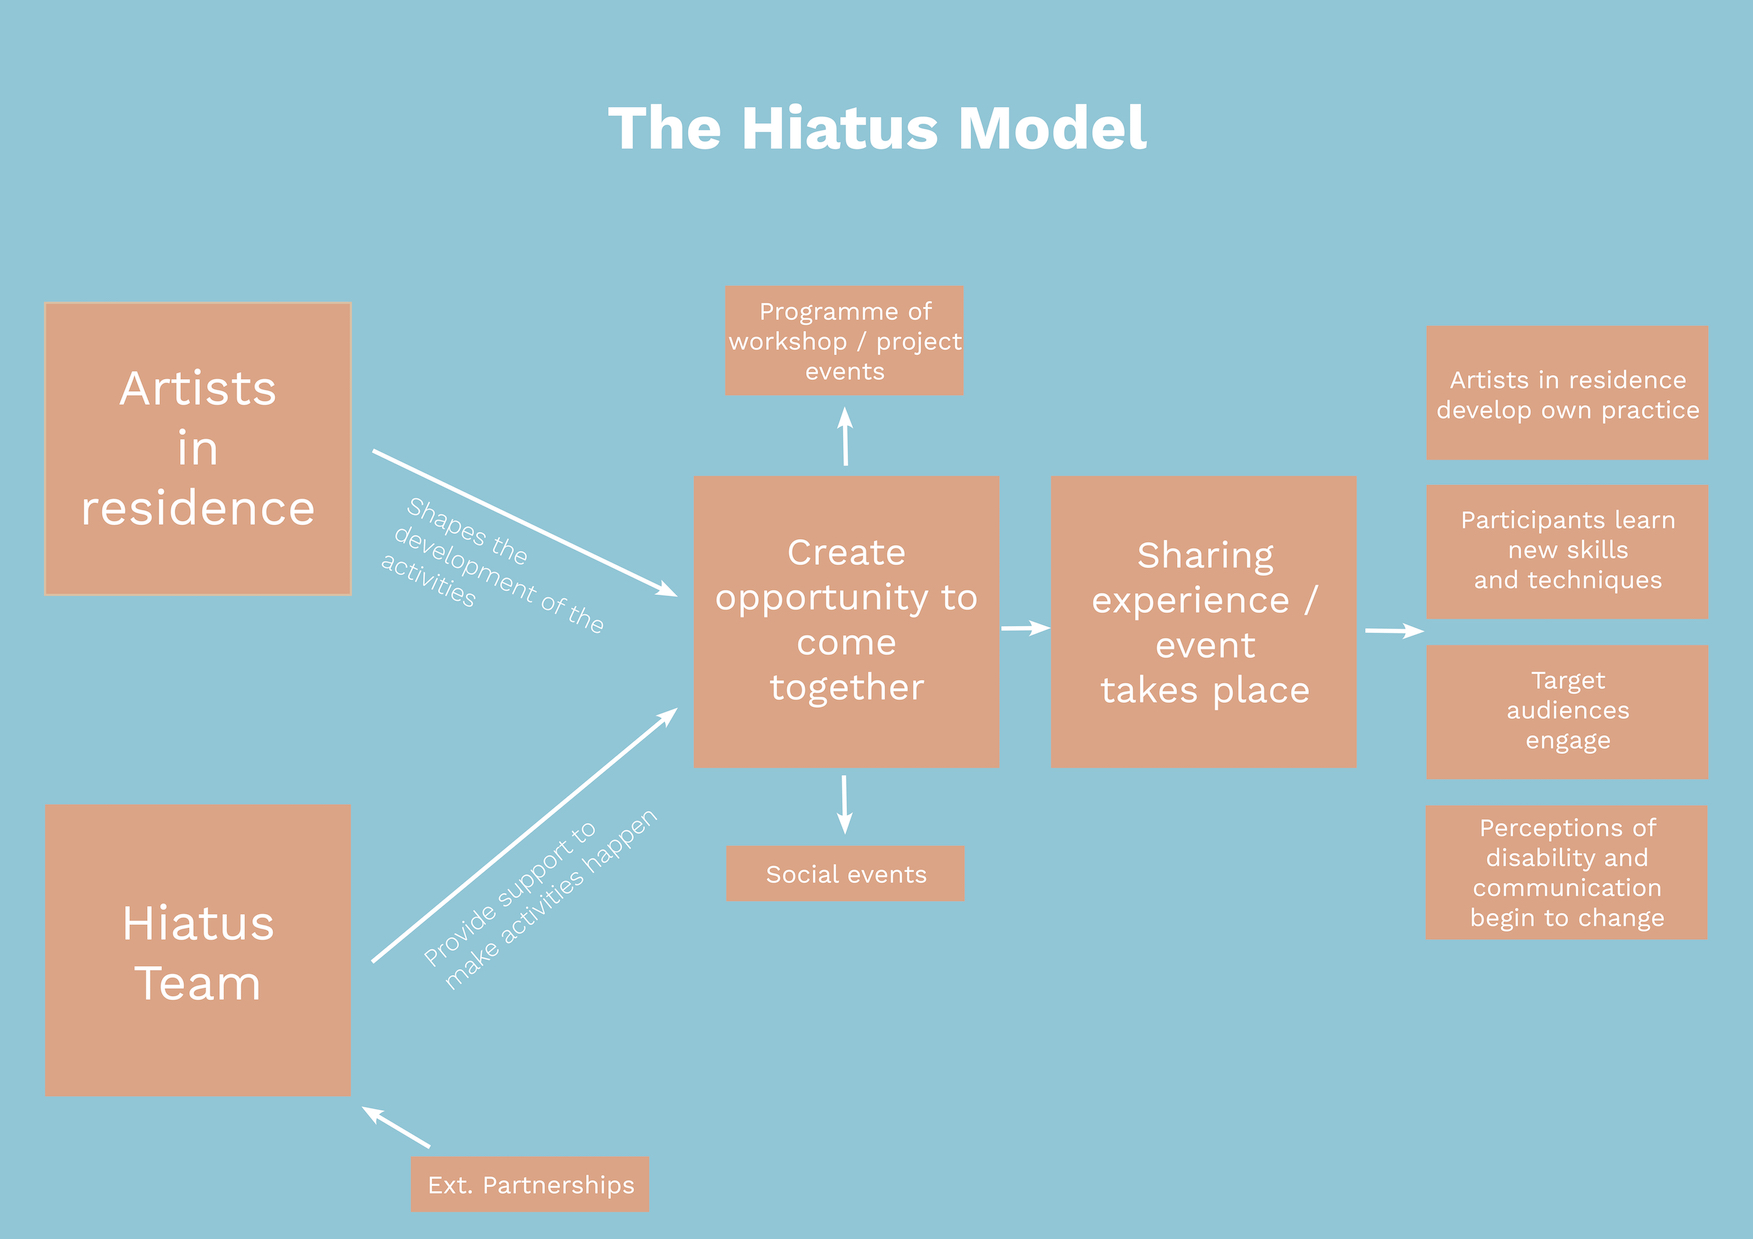 The Hiatus model, scheme explaining how the Collective is organised and where each key group of people come into what we do. It shows the process we go through, in clear steps, to create activities to engage with our audiences. Artists in Residence shape the development of the activities and the Hiatus Team that is also formed from external partnerships provide support to make activities happen. Both artists in Residence and Hiatus team create opportunity to come together in a form of social events, programme of workshop / project events and then results into sharing experience or event takes place. The outcomes include artists in residence developing own practices; participants learn new skills and techniques; target audiences engage; perceptions of disability and communication begin to change.